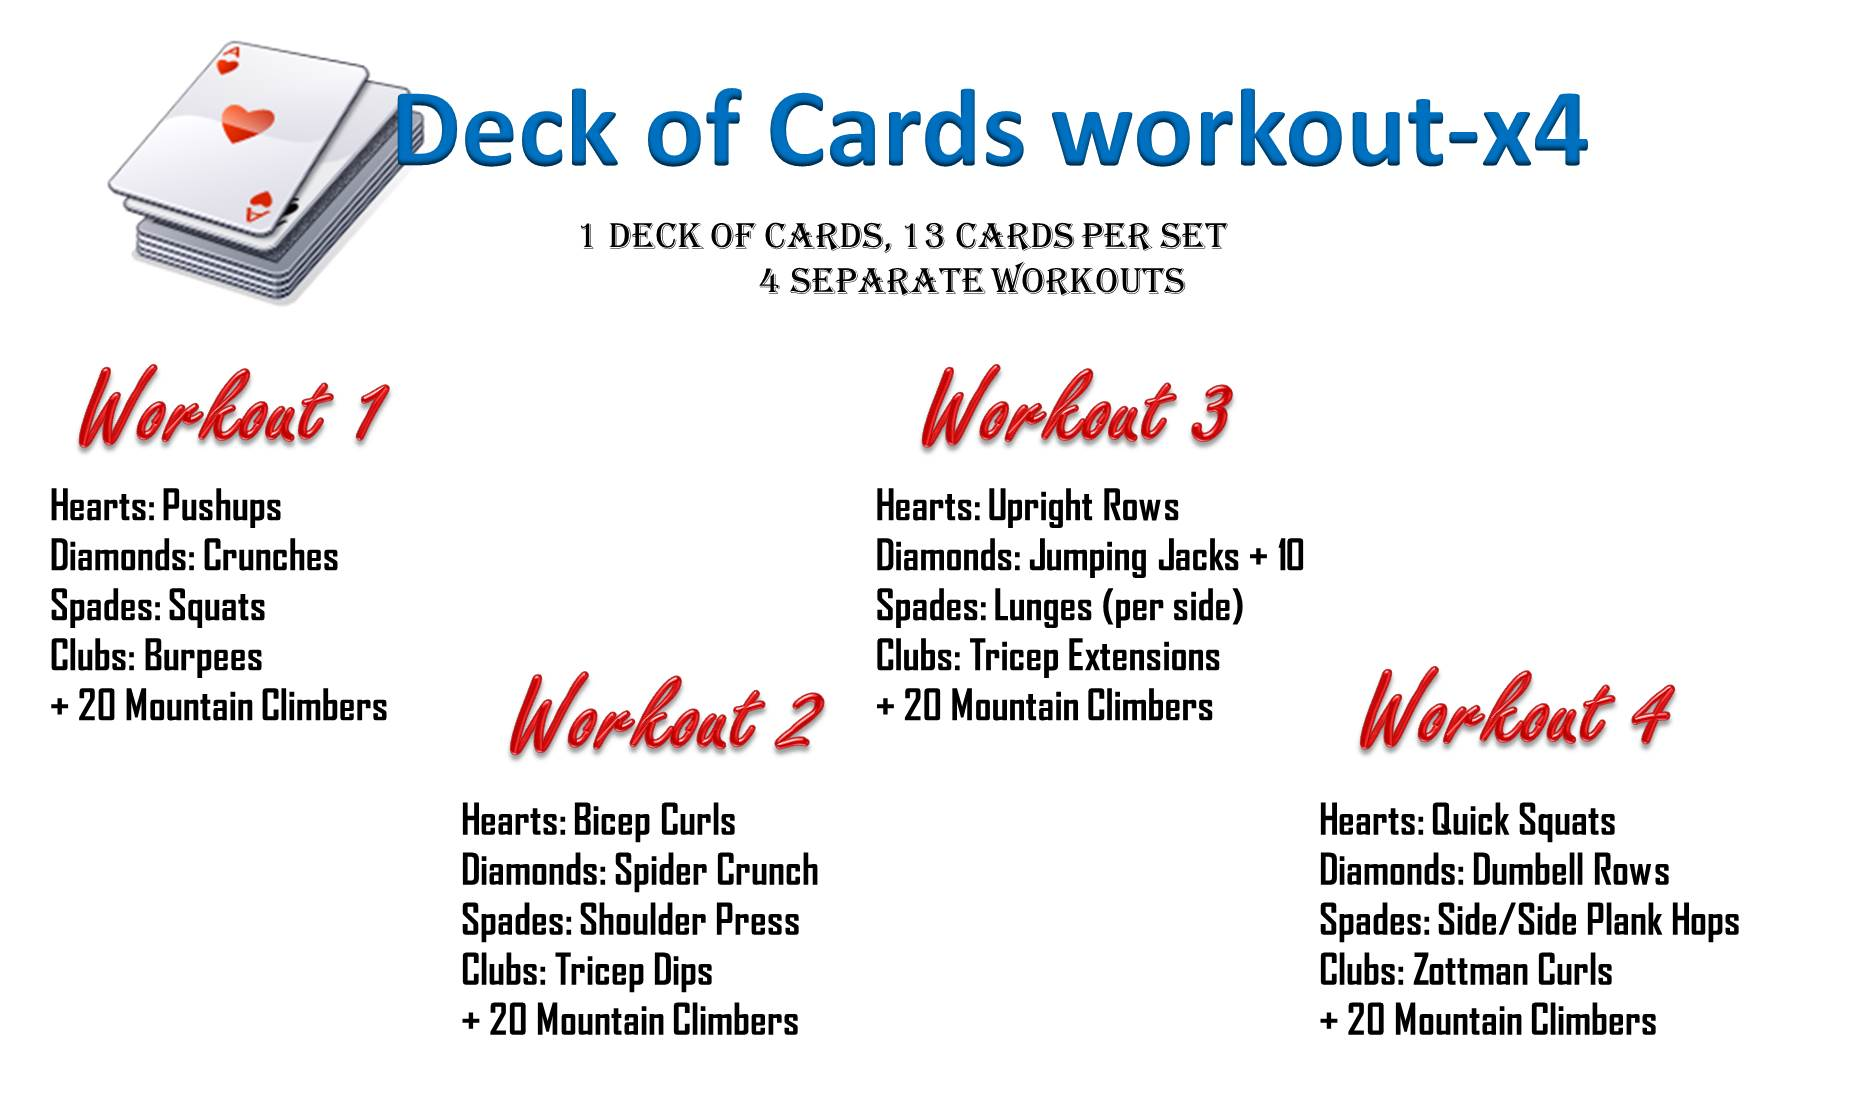 deck of cards workout | krhtoday